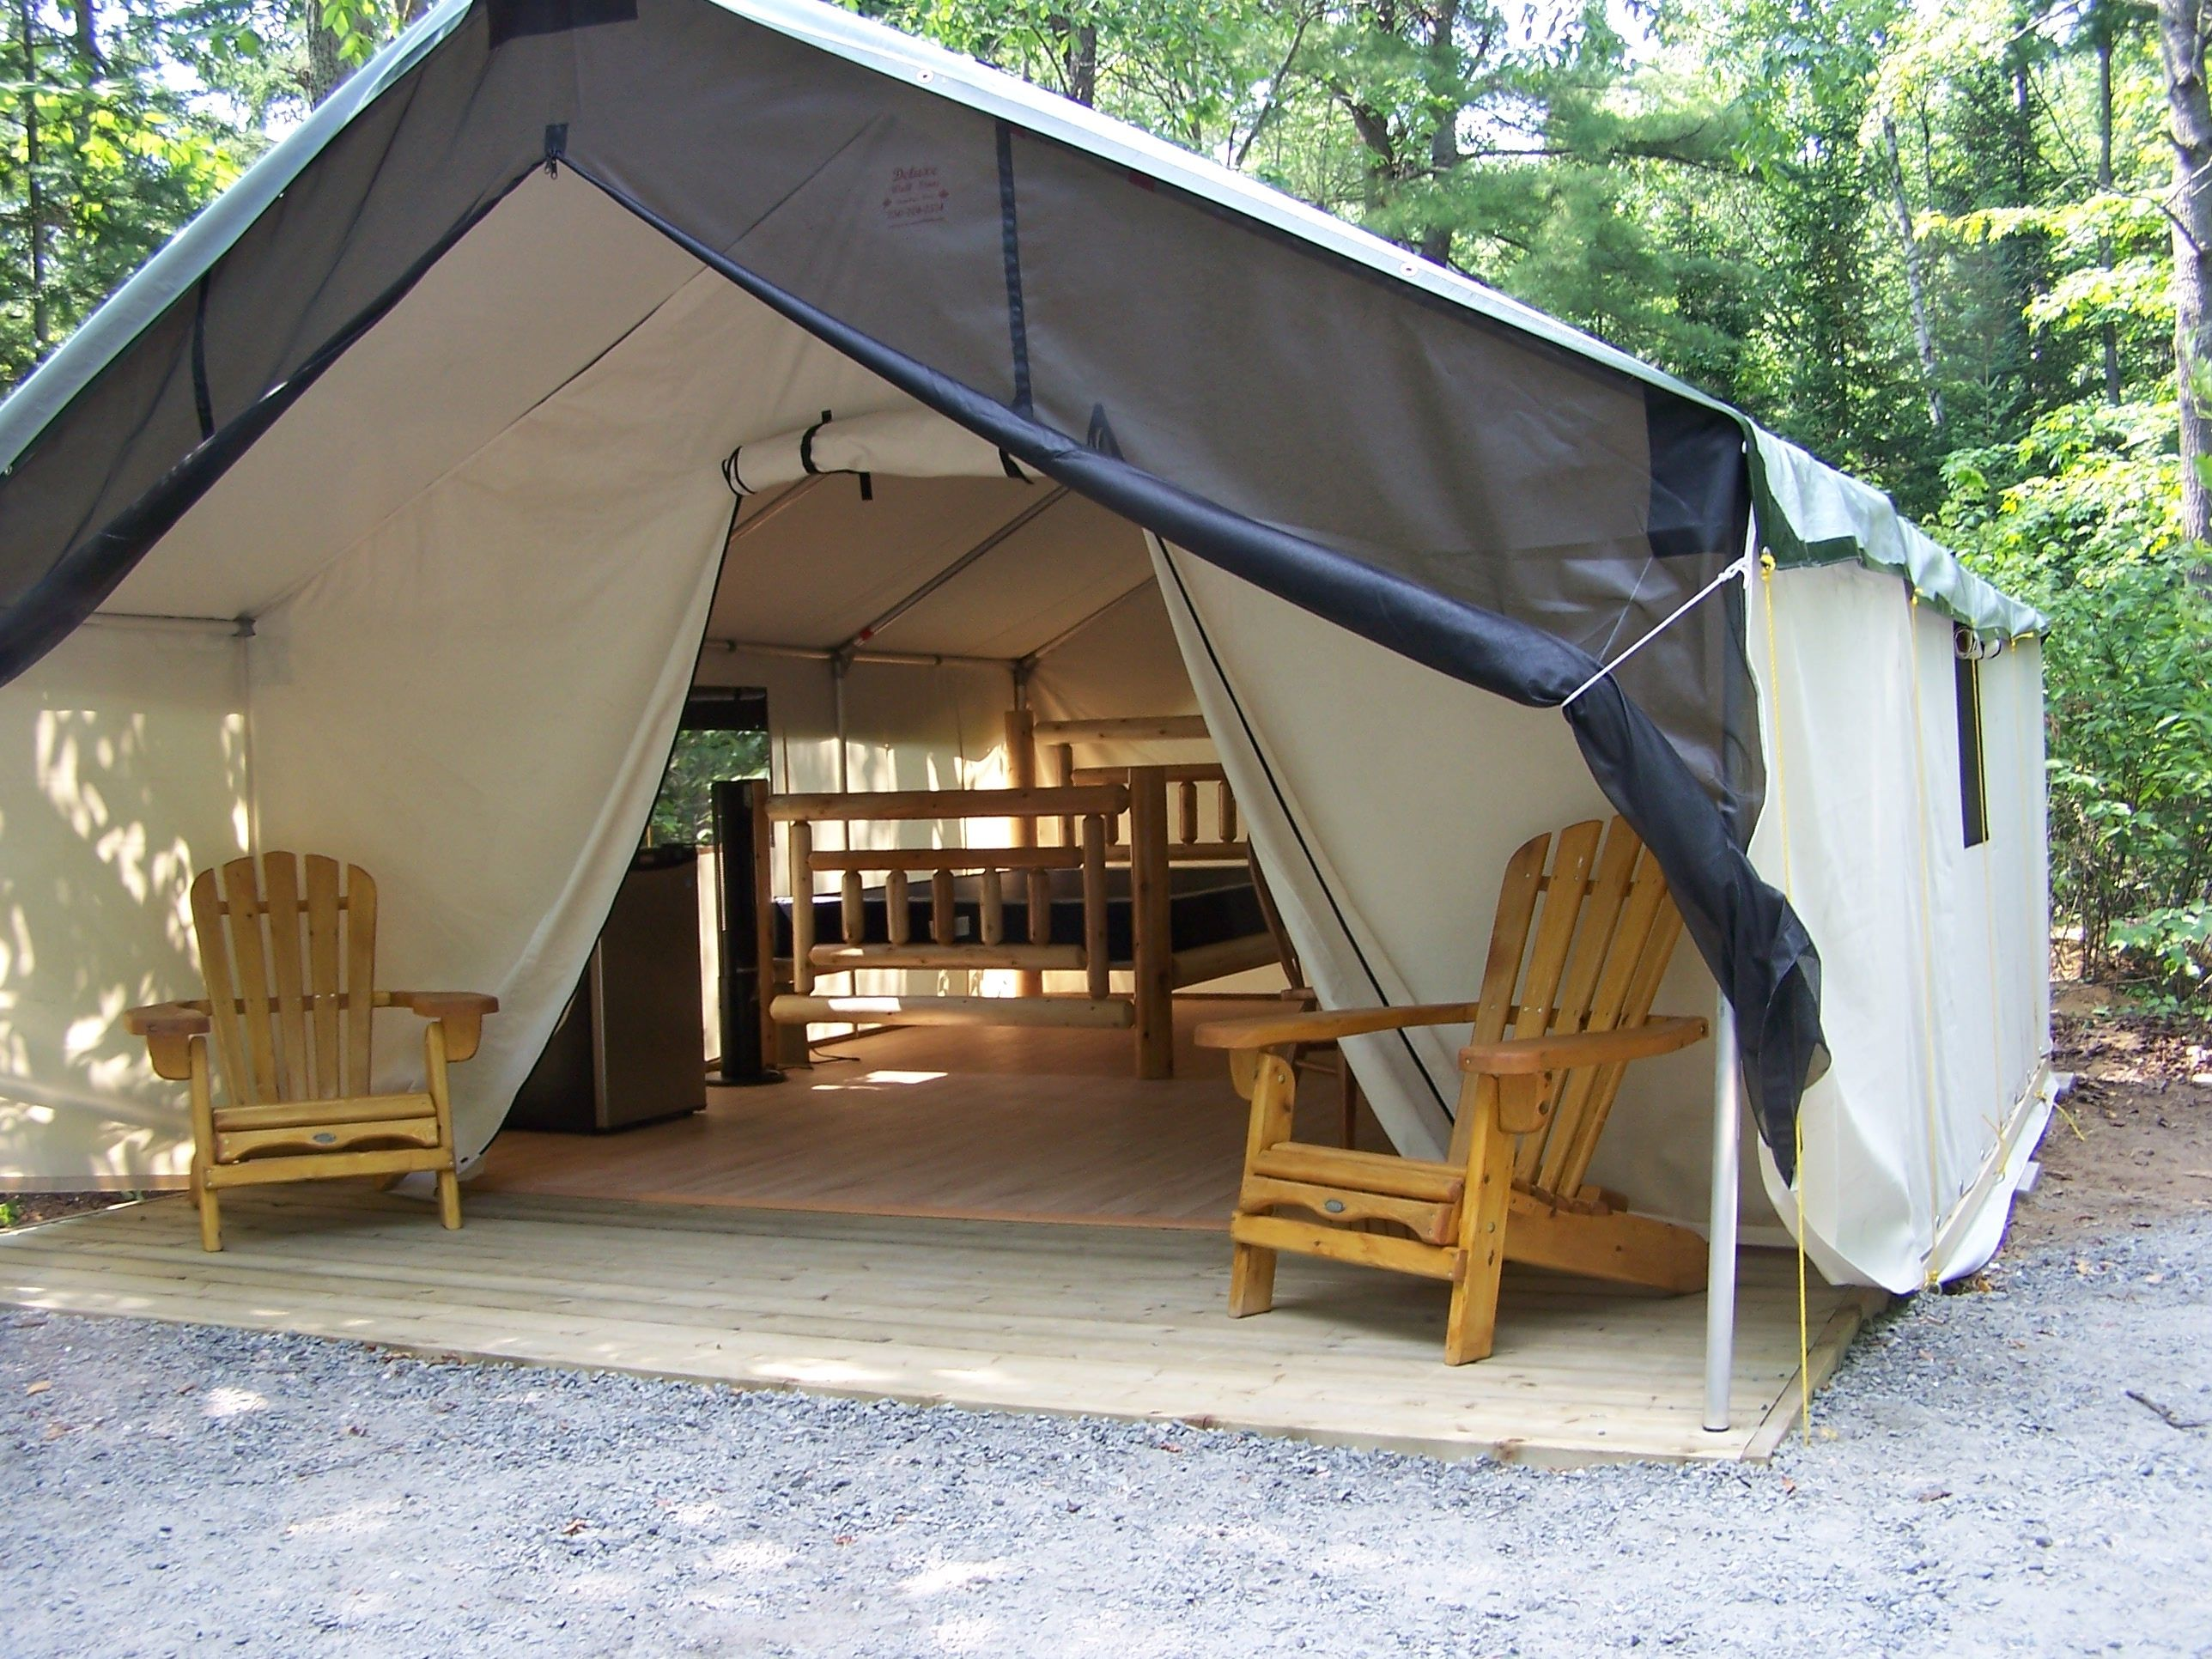 C&ing Tent with Screen Porch With Screen Porch | C& in Comfort » Parks Blog & Camping Tent with Screen Porch With Screen Porch | Camp in Comfort ...